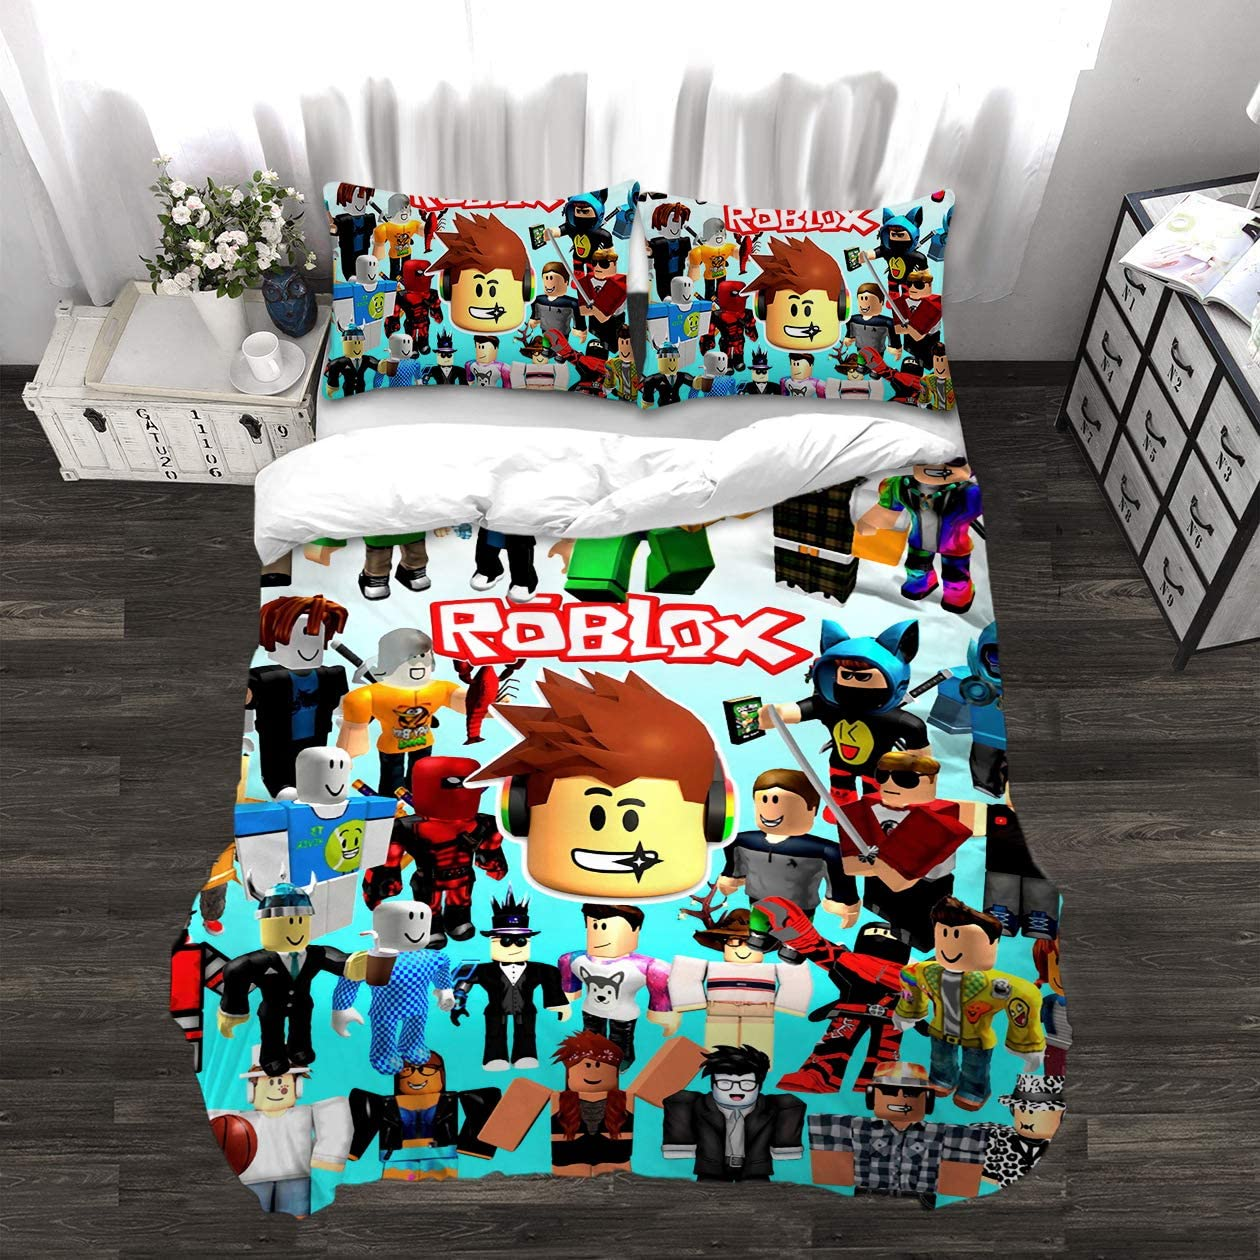 bedding 3 piece twin bed sets 3d print cartoon quilt cover large 3 piece bedding set soft and breathable comforter cover